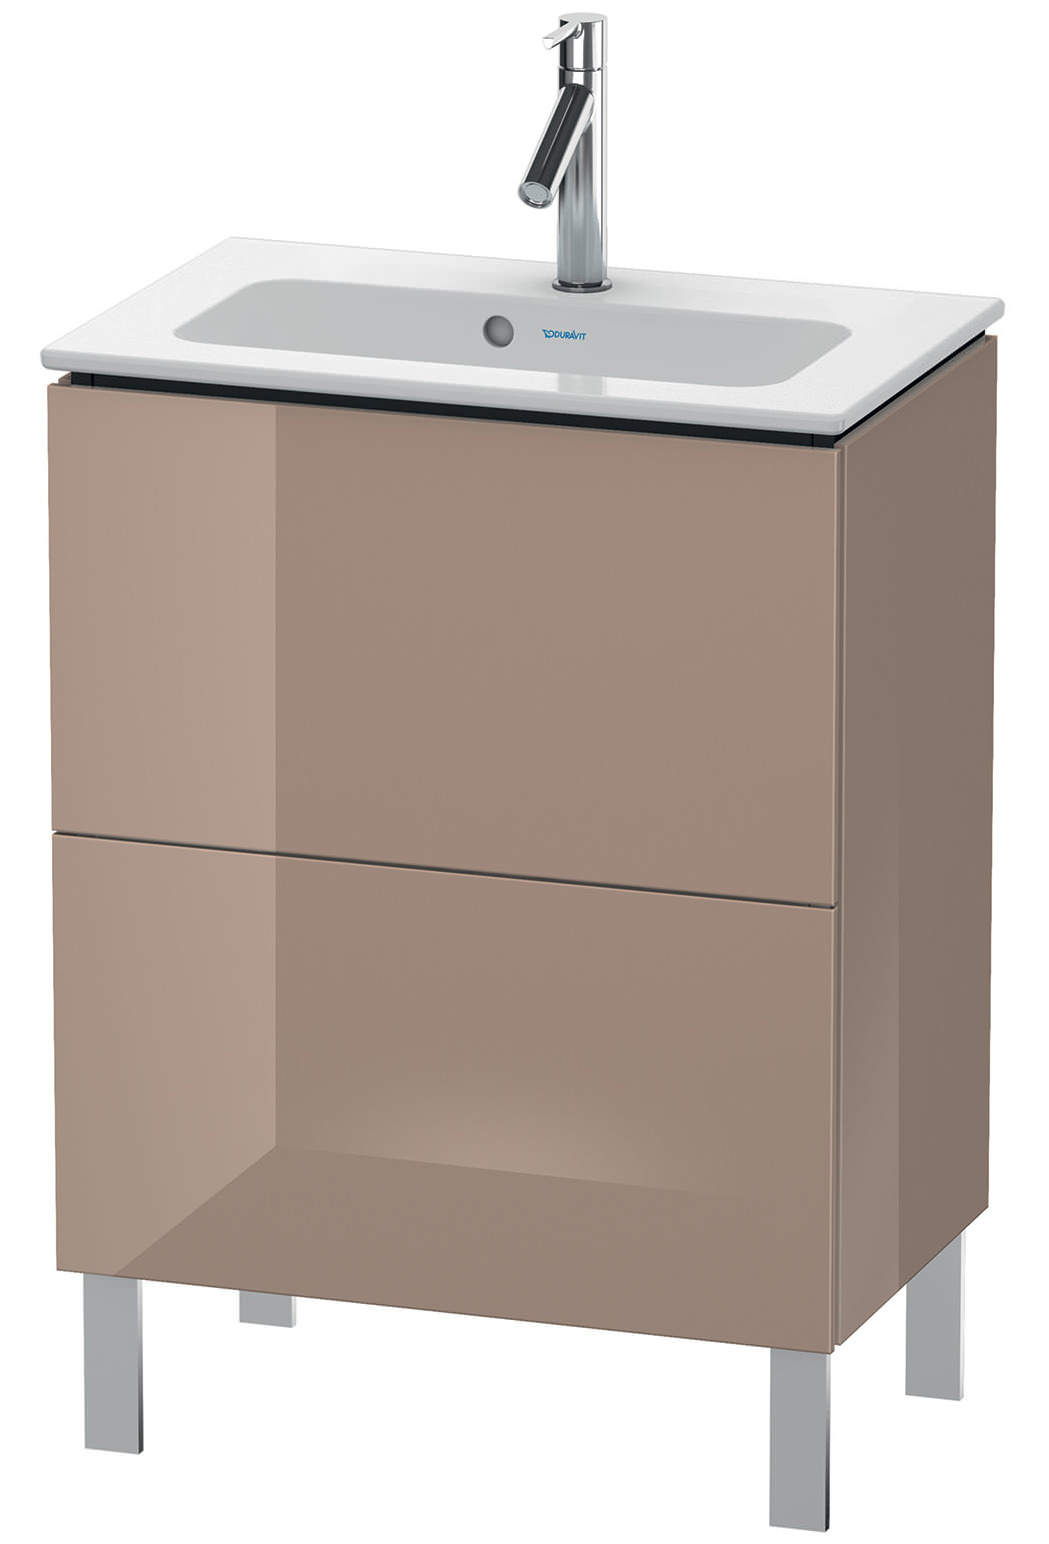 duravit l cube 620mm floor standing compact vanity unit with me by starck basin. Black Bedroom Furniture Sets. Home Design Ideas